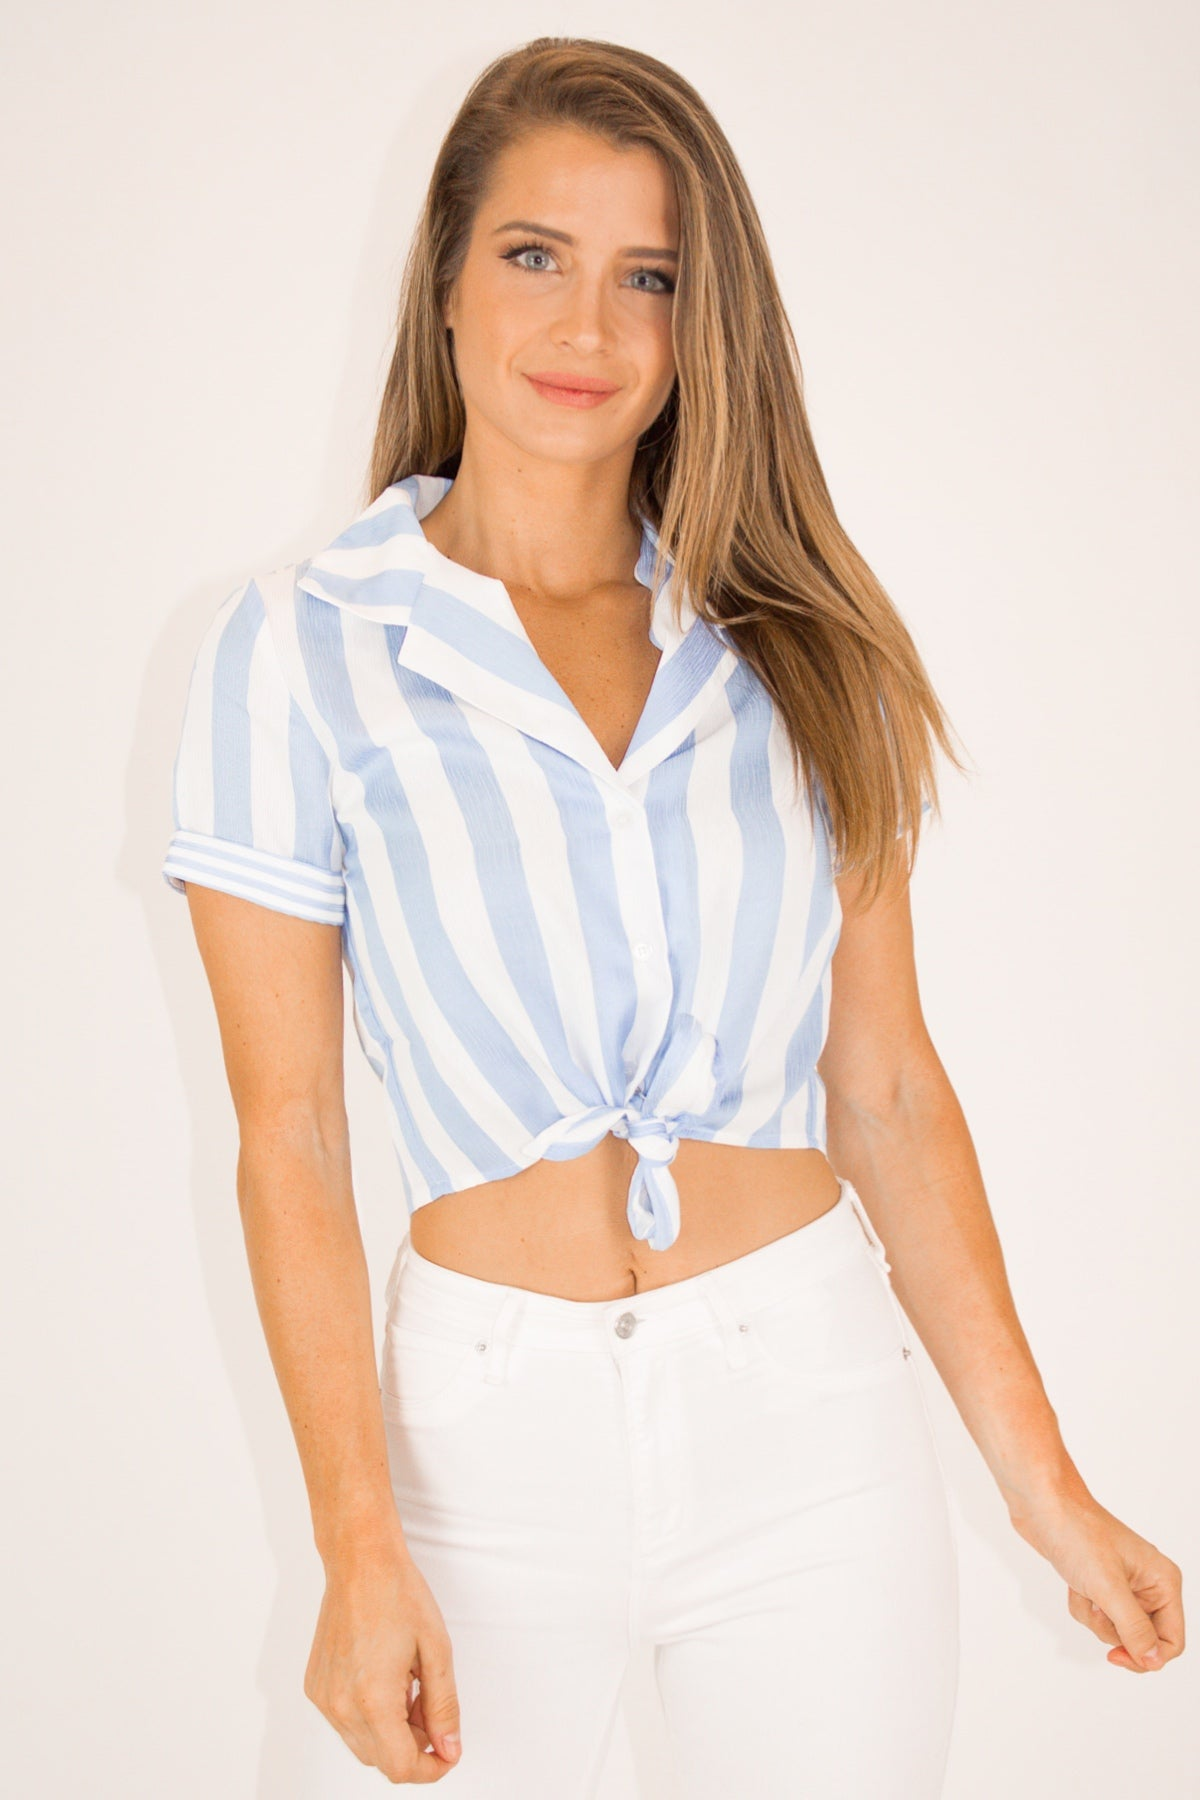 BABY BLUE BUTTON UP CROP TOP